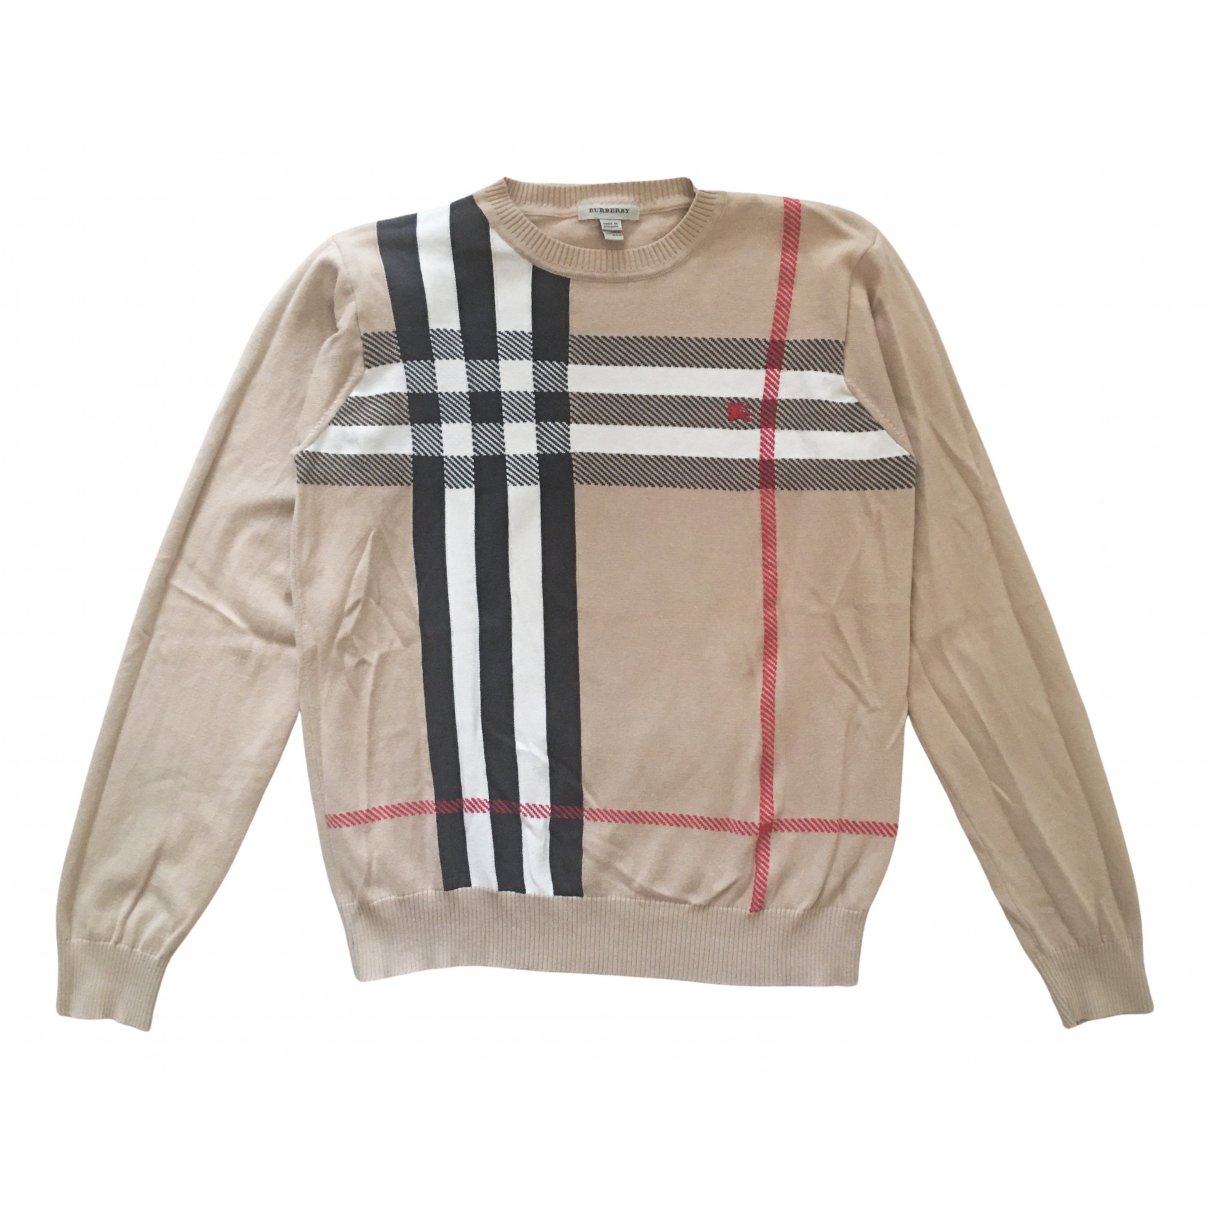 Burberry N Multicolour Cotton Knitwear for Kids 14 years - S UK